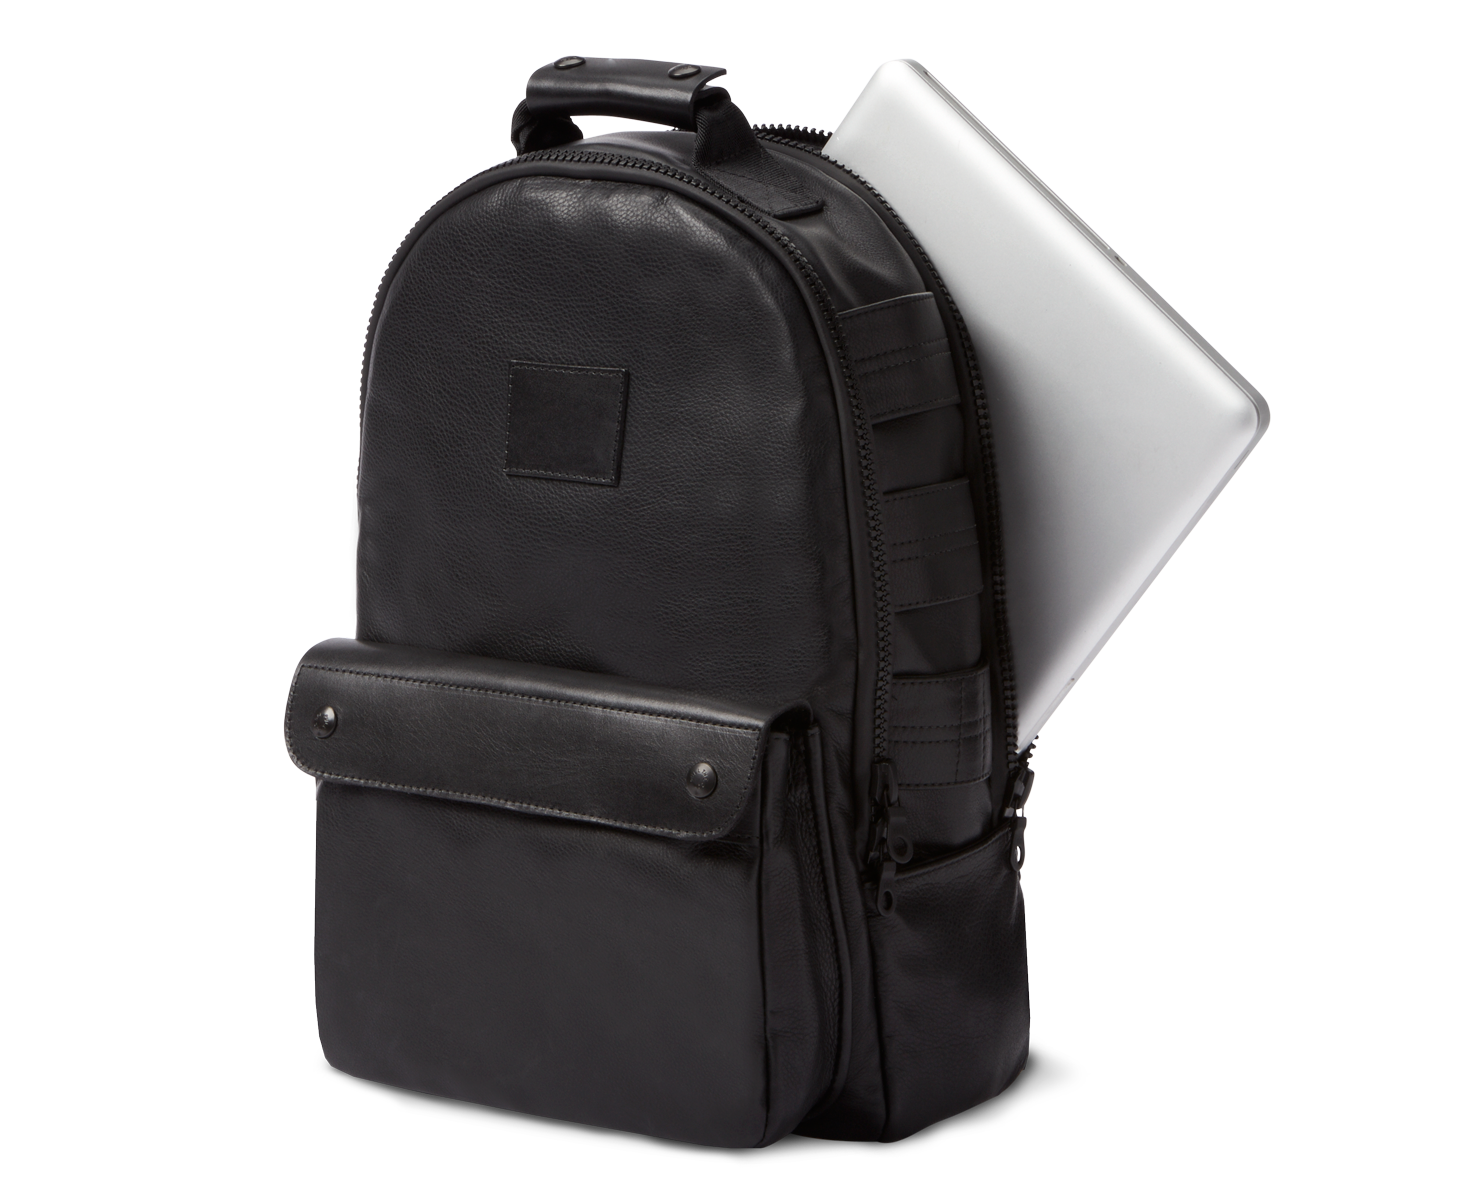 UTILITY BACKPACK | KILLSPENCER® - Black Leather